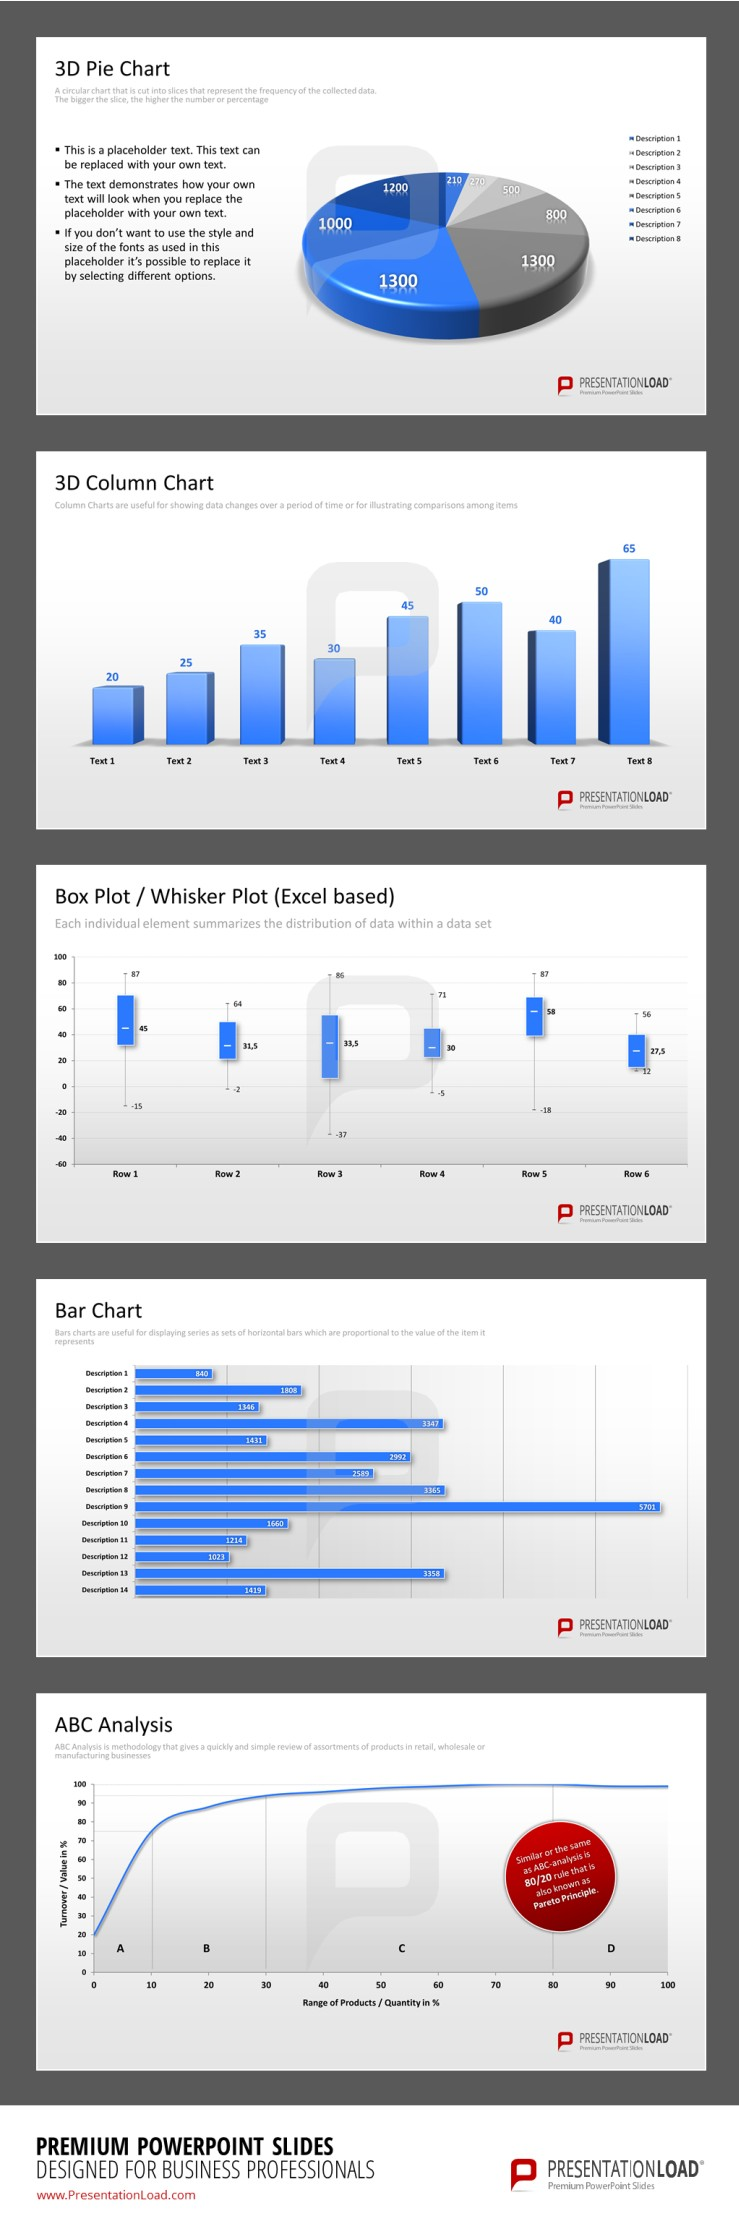 total-quality management powerpoint templates #presentationload, Powerpoint templates